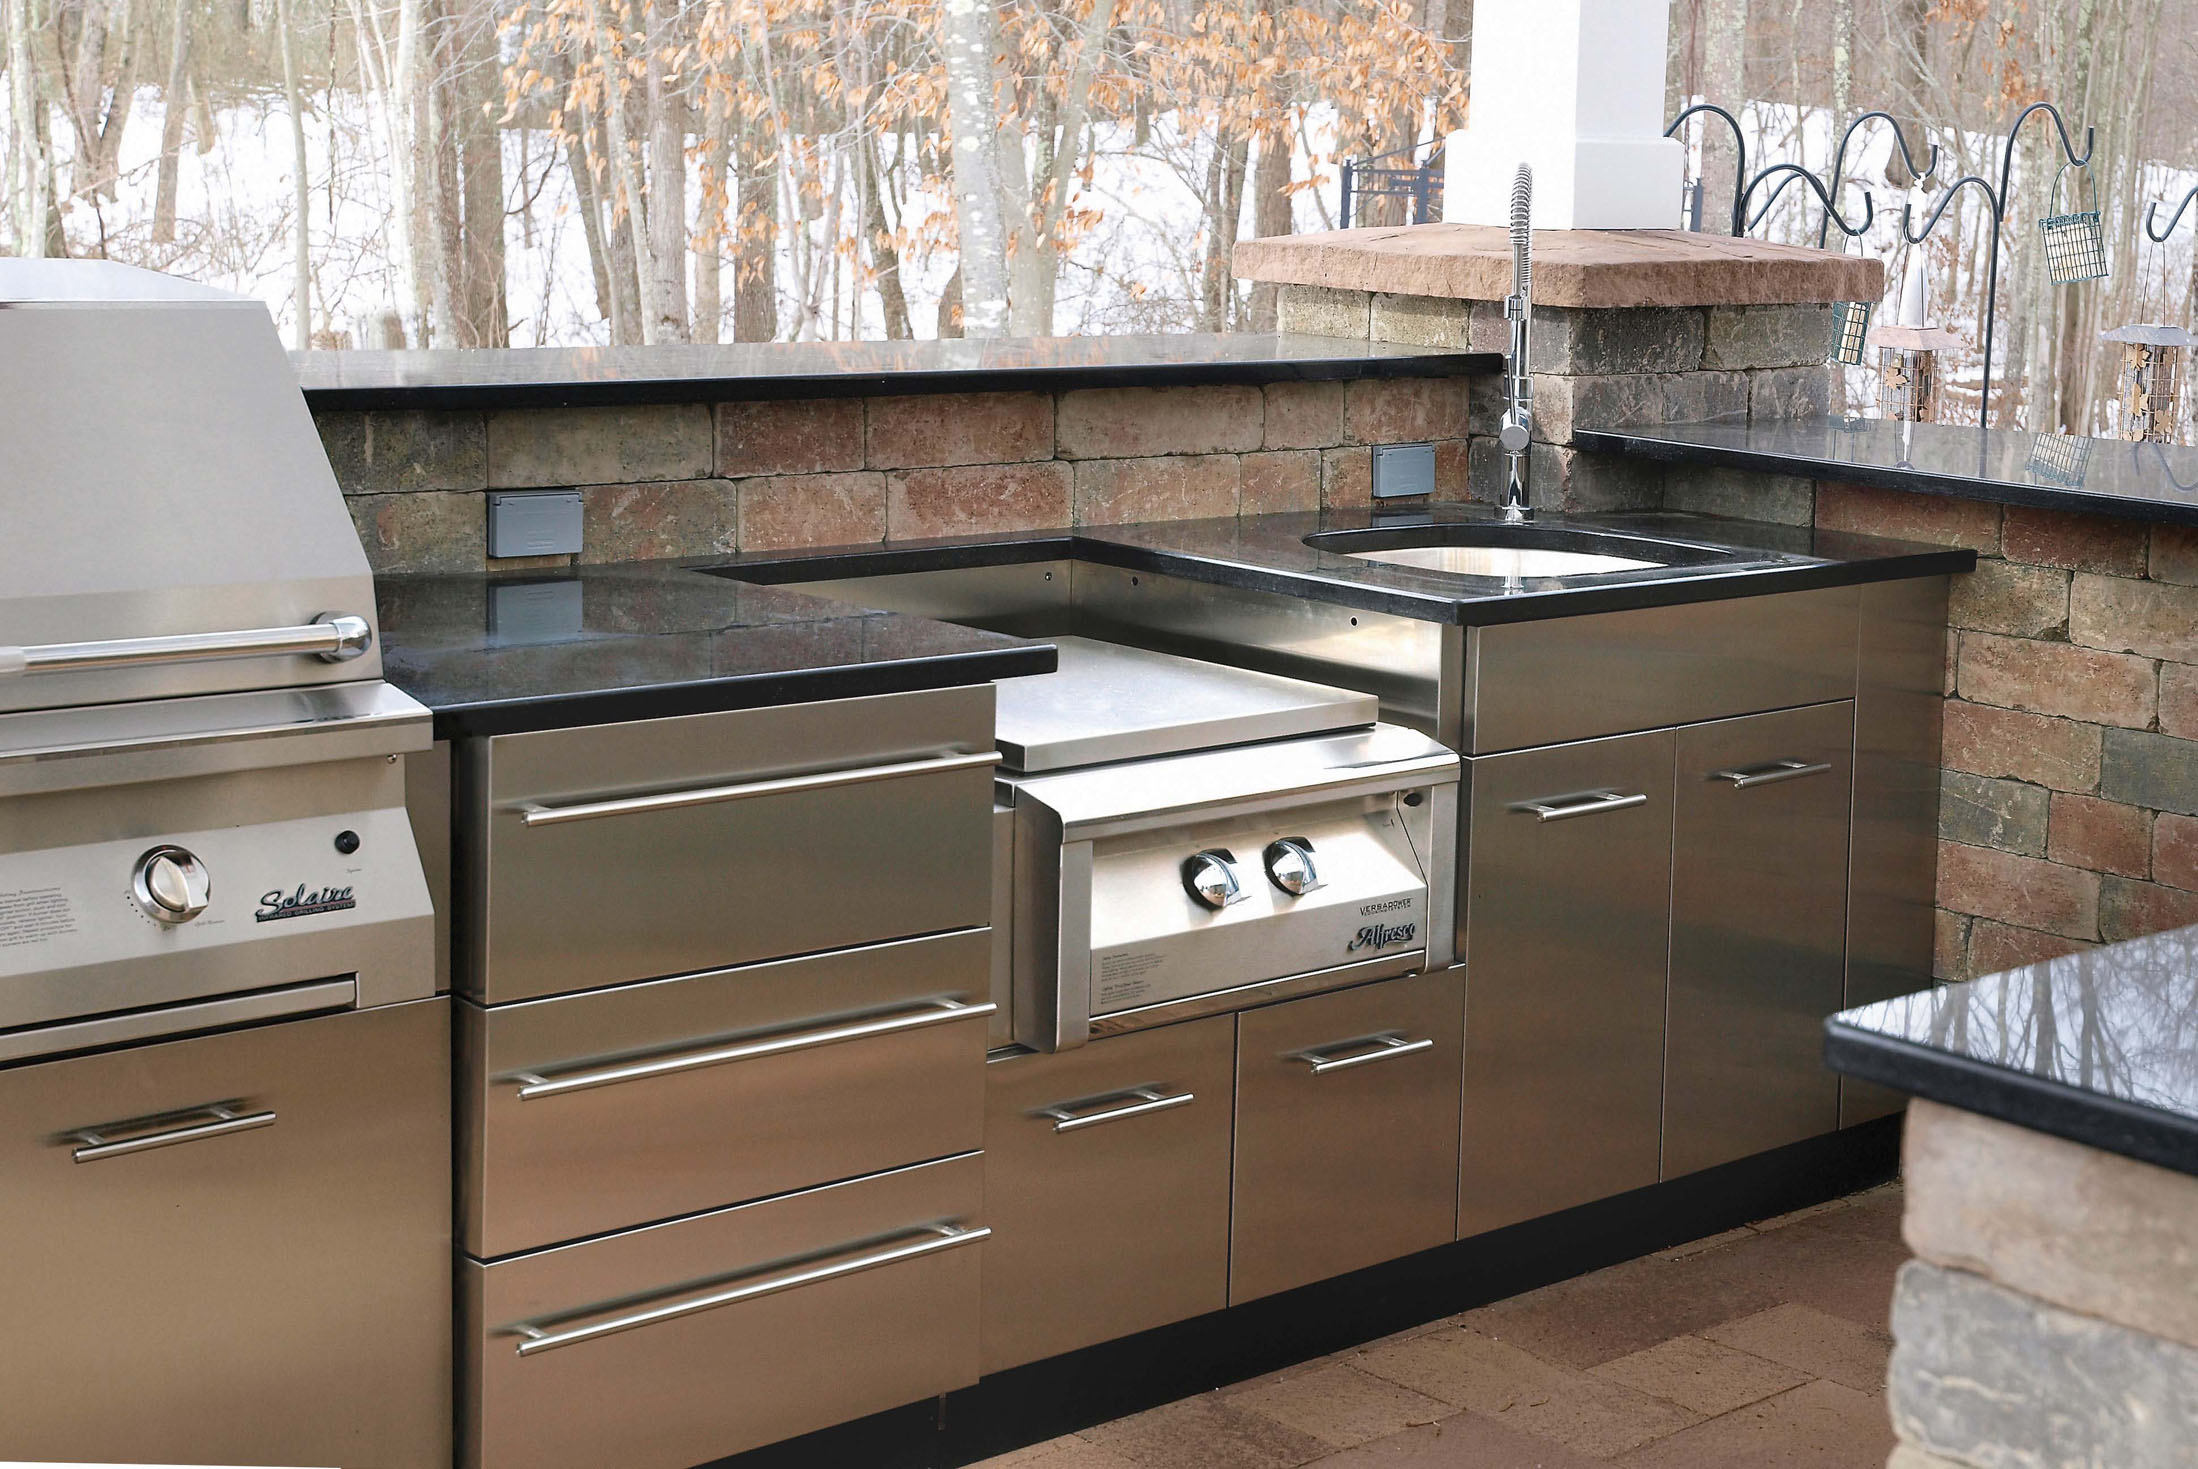 Outdoor Stainless Kitchen In Winter In Ct Danver Stainless Steel Cabinetry